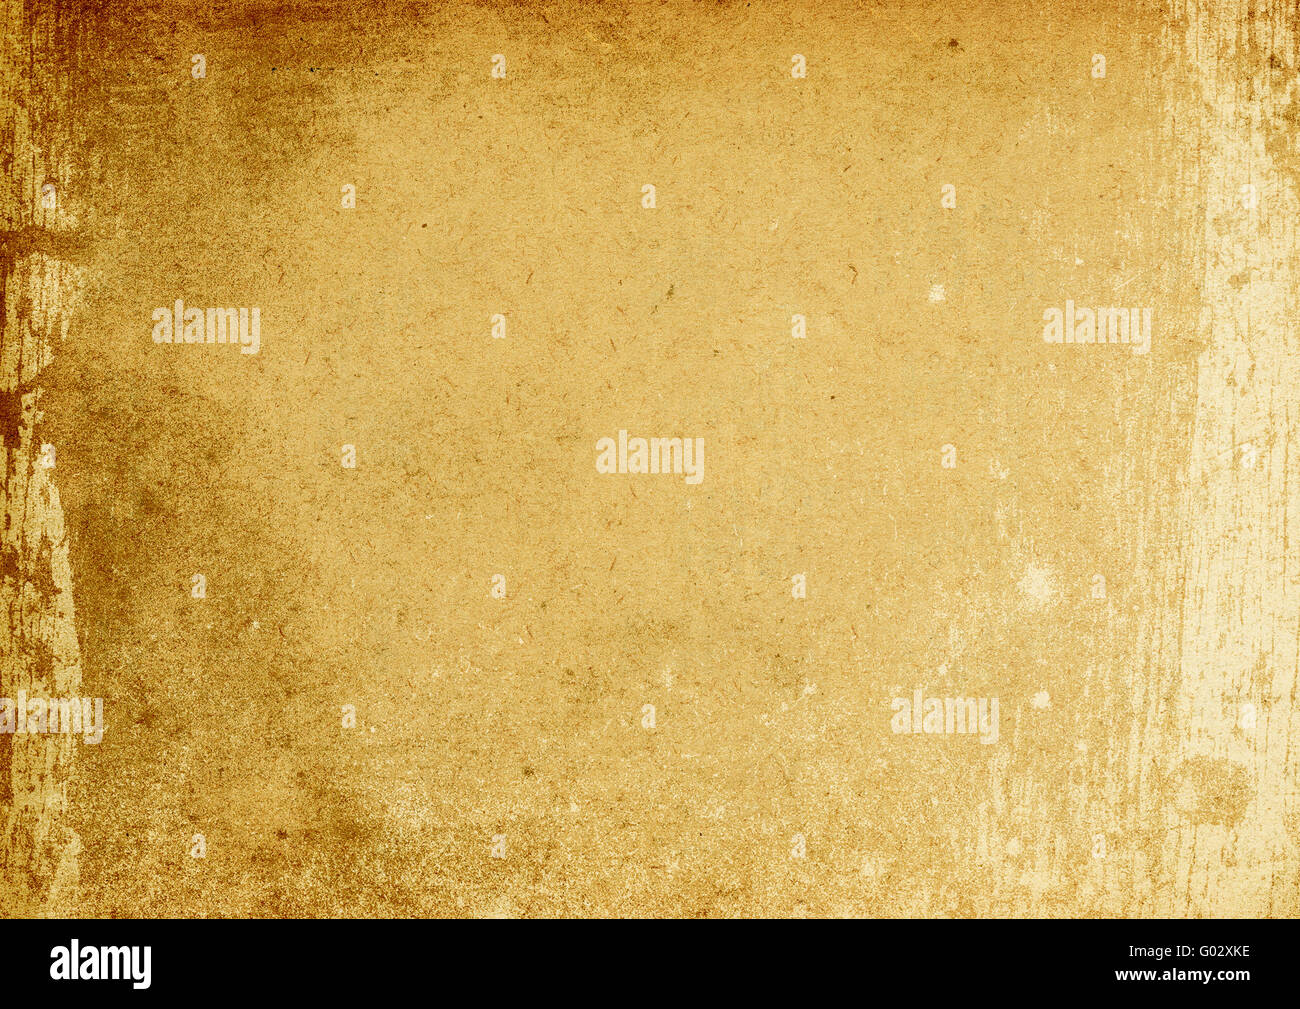 Vintage brown stained background (A4 format, horizontal orientation). - Stock Image